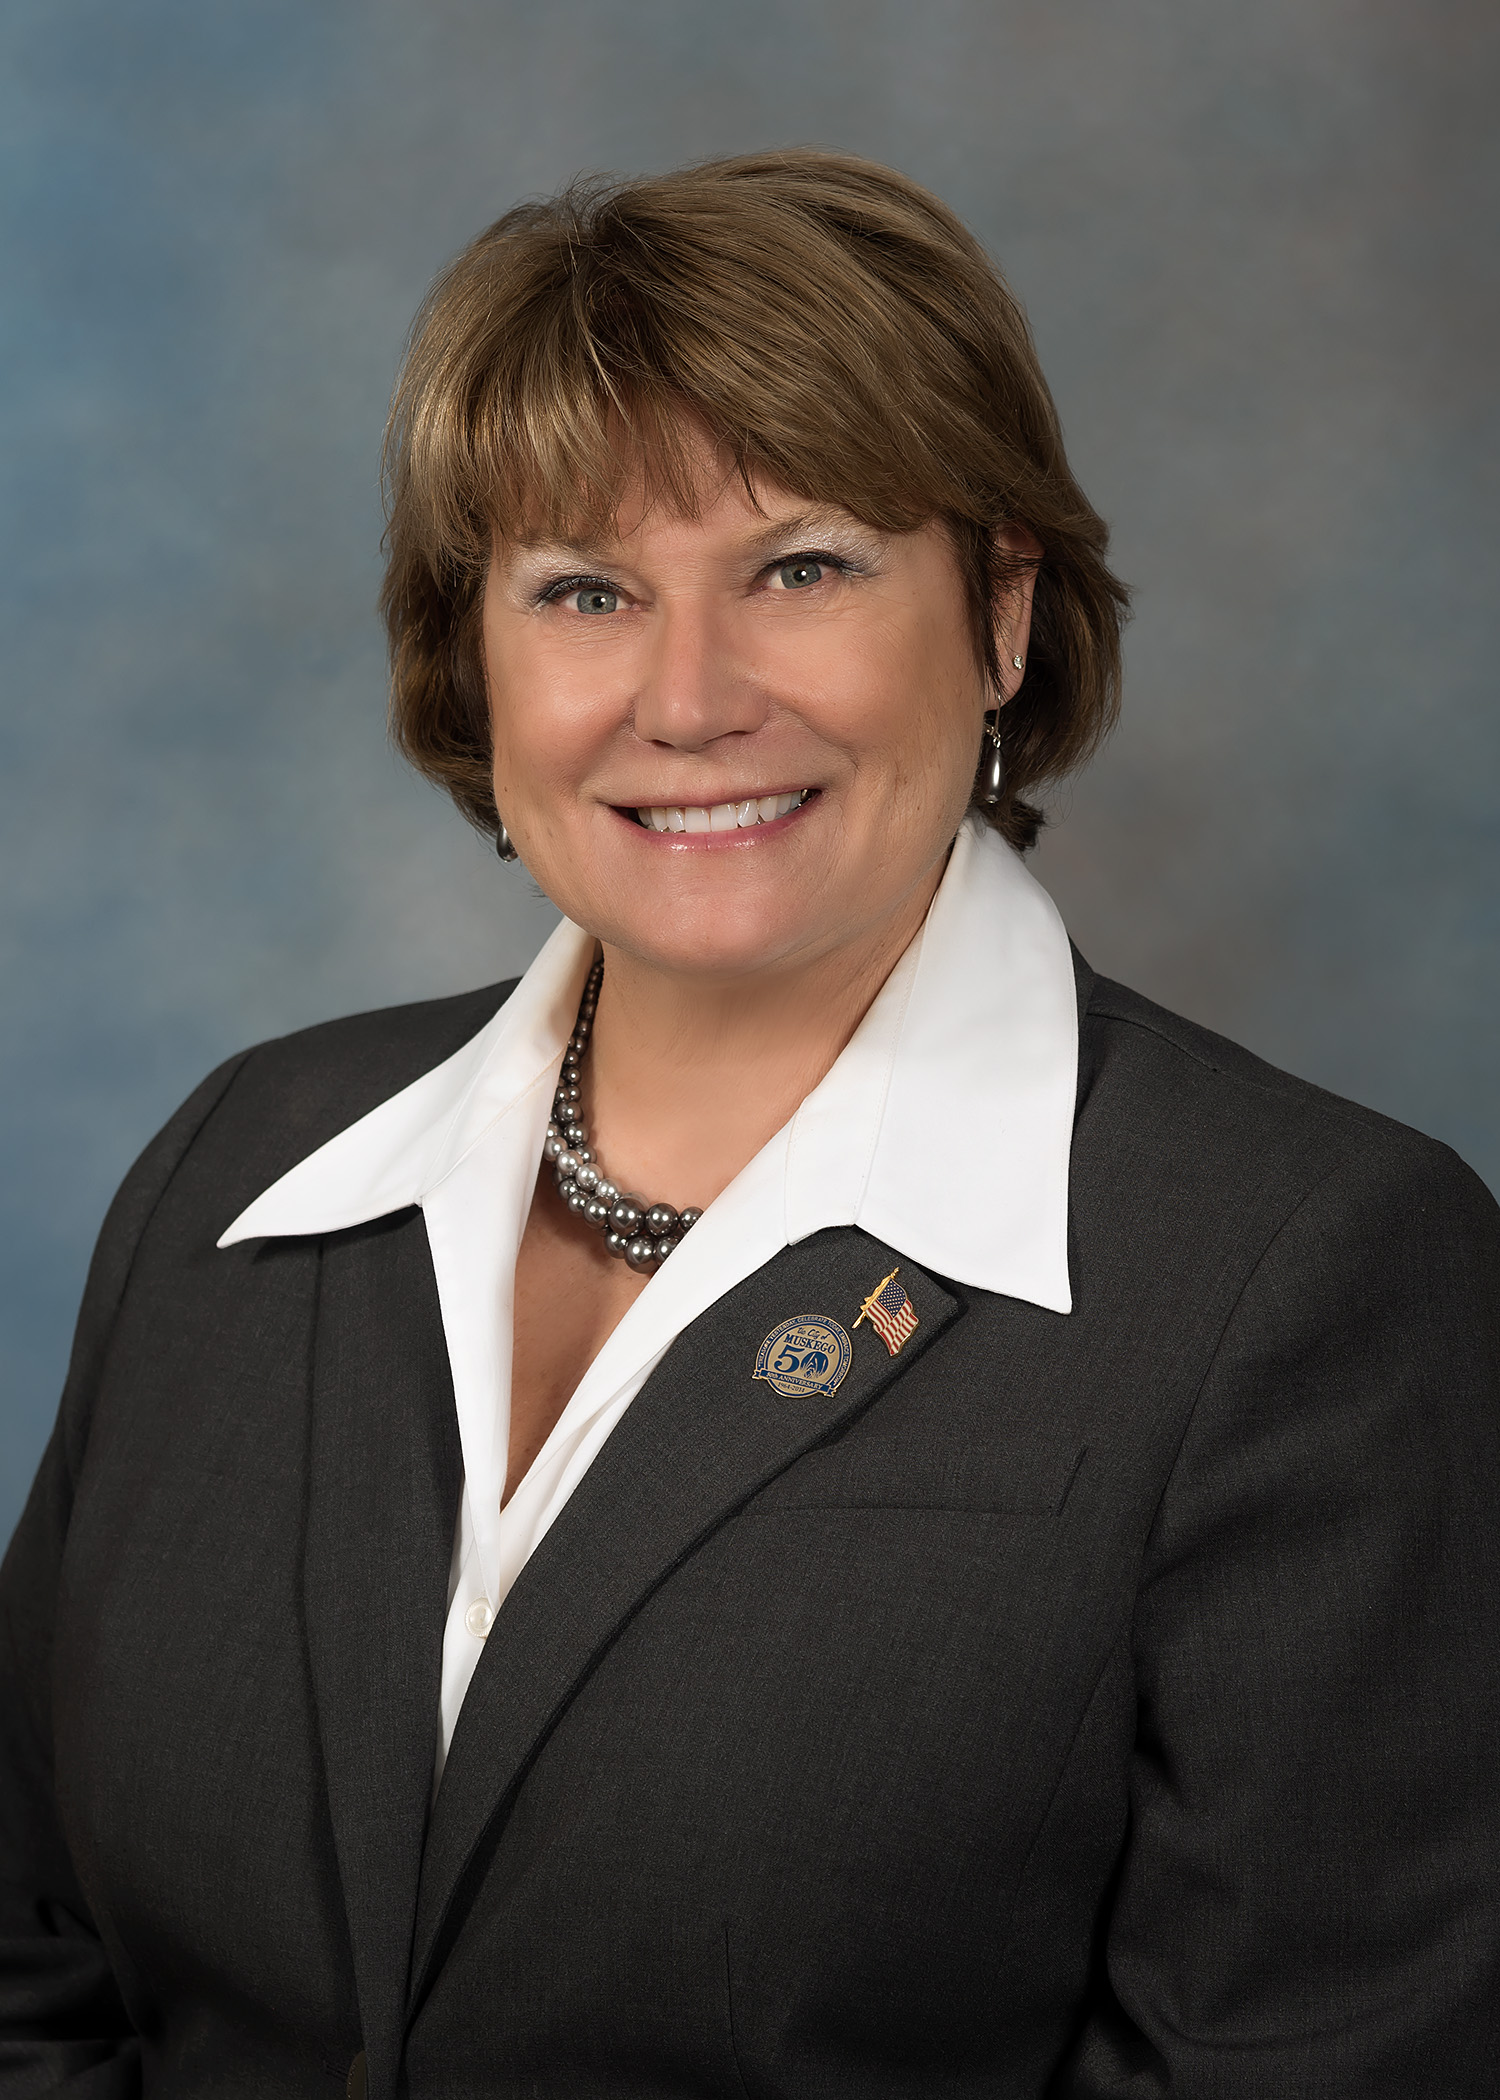 Mayor Kathy Chiaverotti